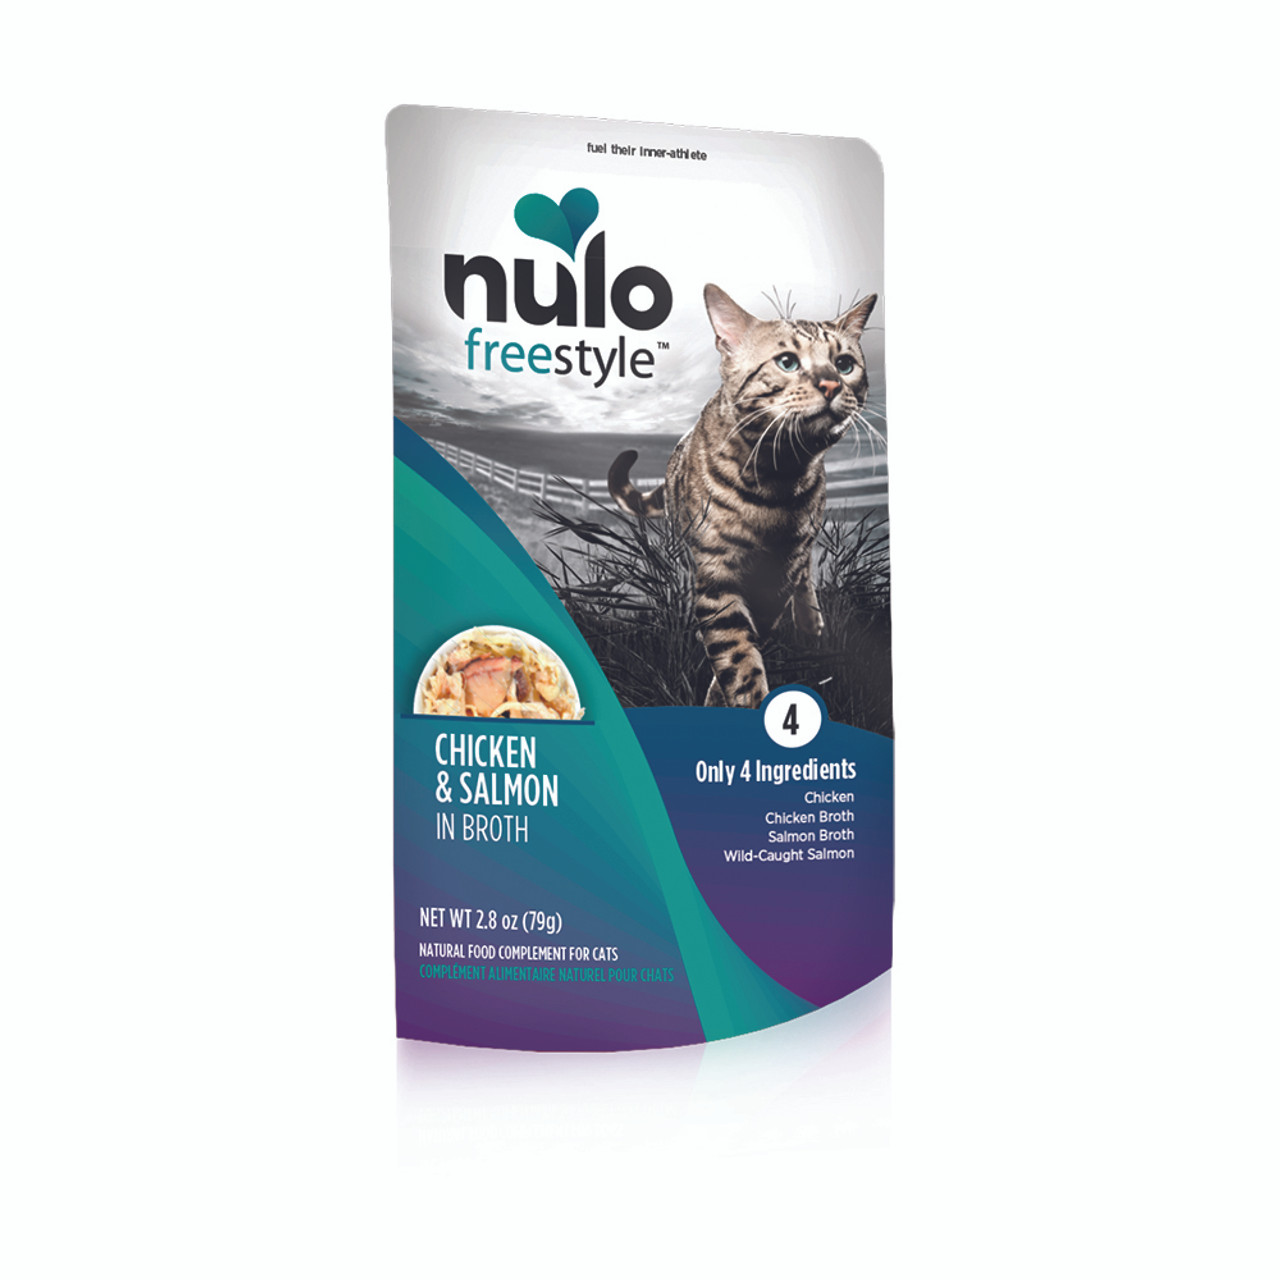 Nulo Freestyle Chicken & Salmon in Broth Cat Food Pouch